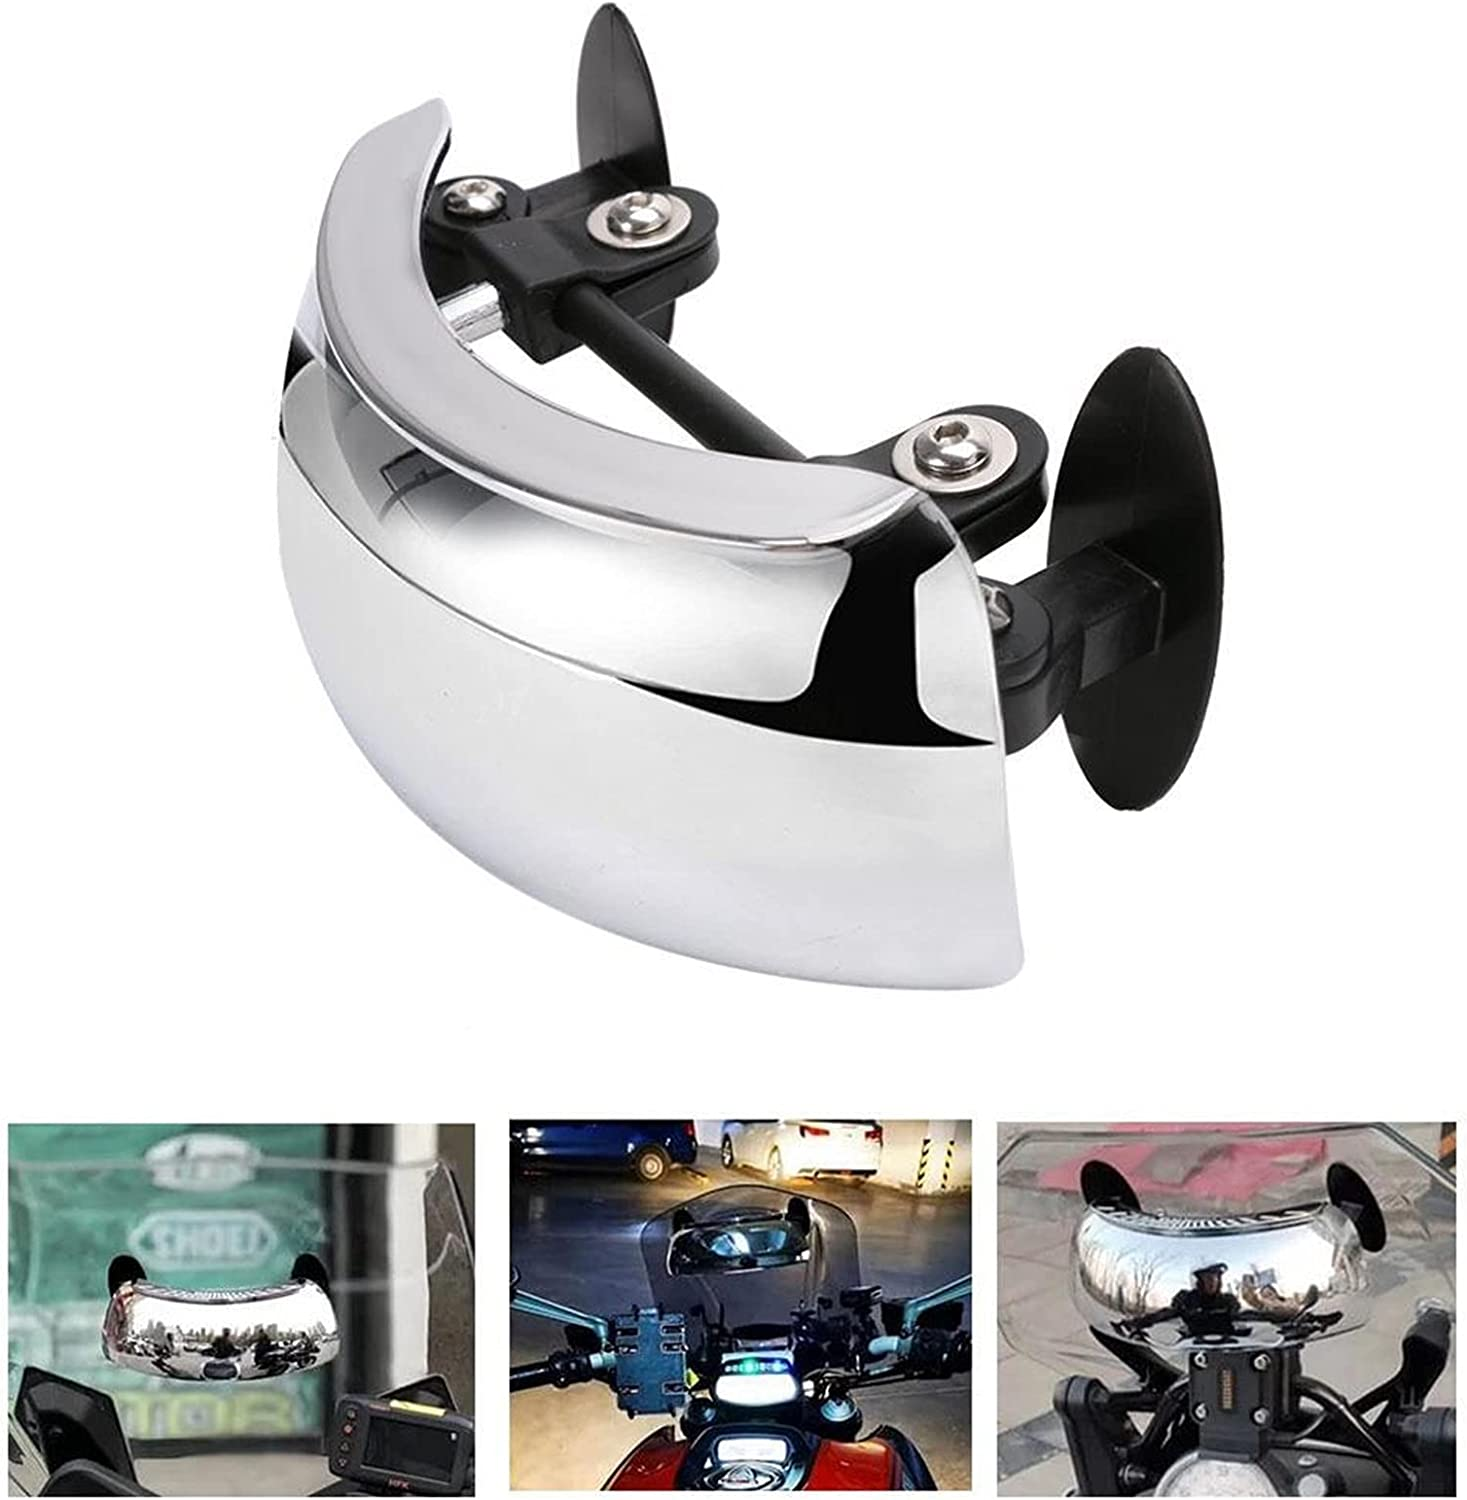 QWERASD Motorcycle Rearview Mirrors Max Super popular specialty store 65% OFF 180 View Degree Safety Rear